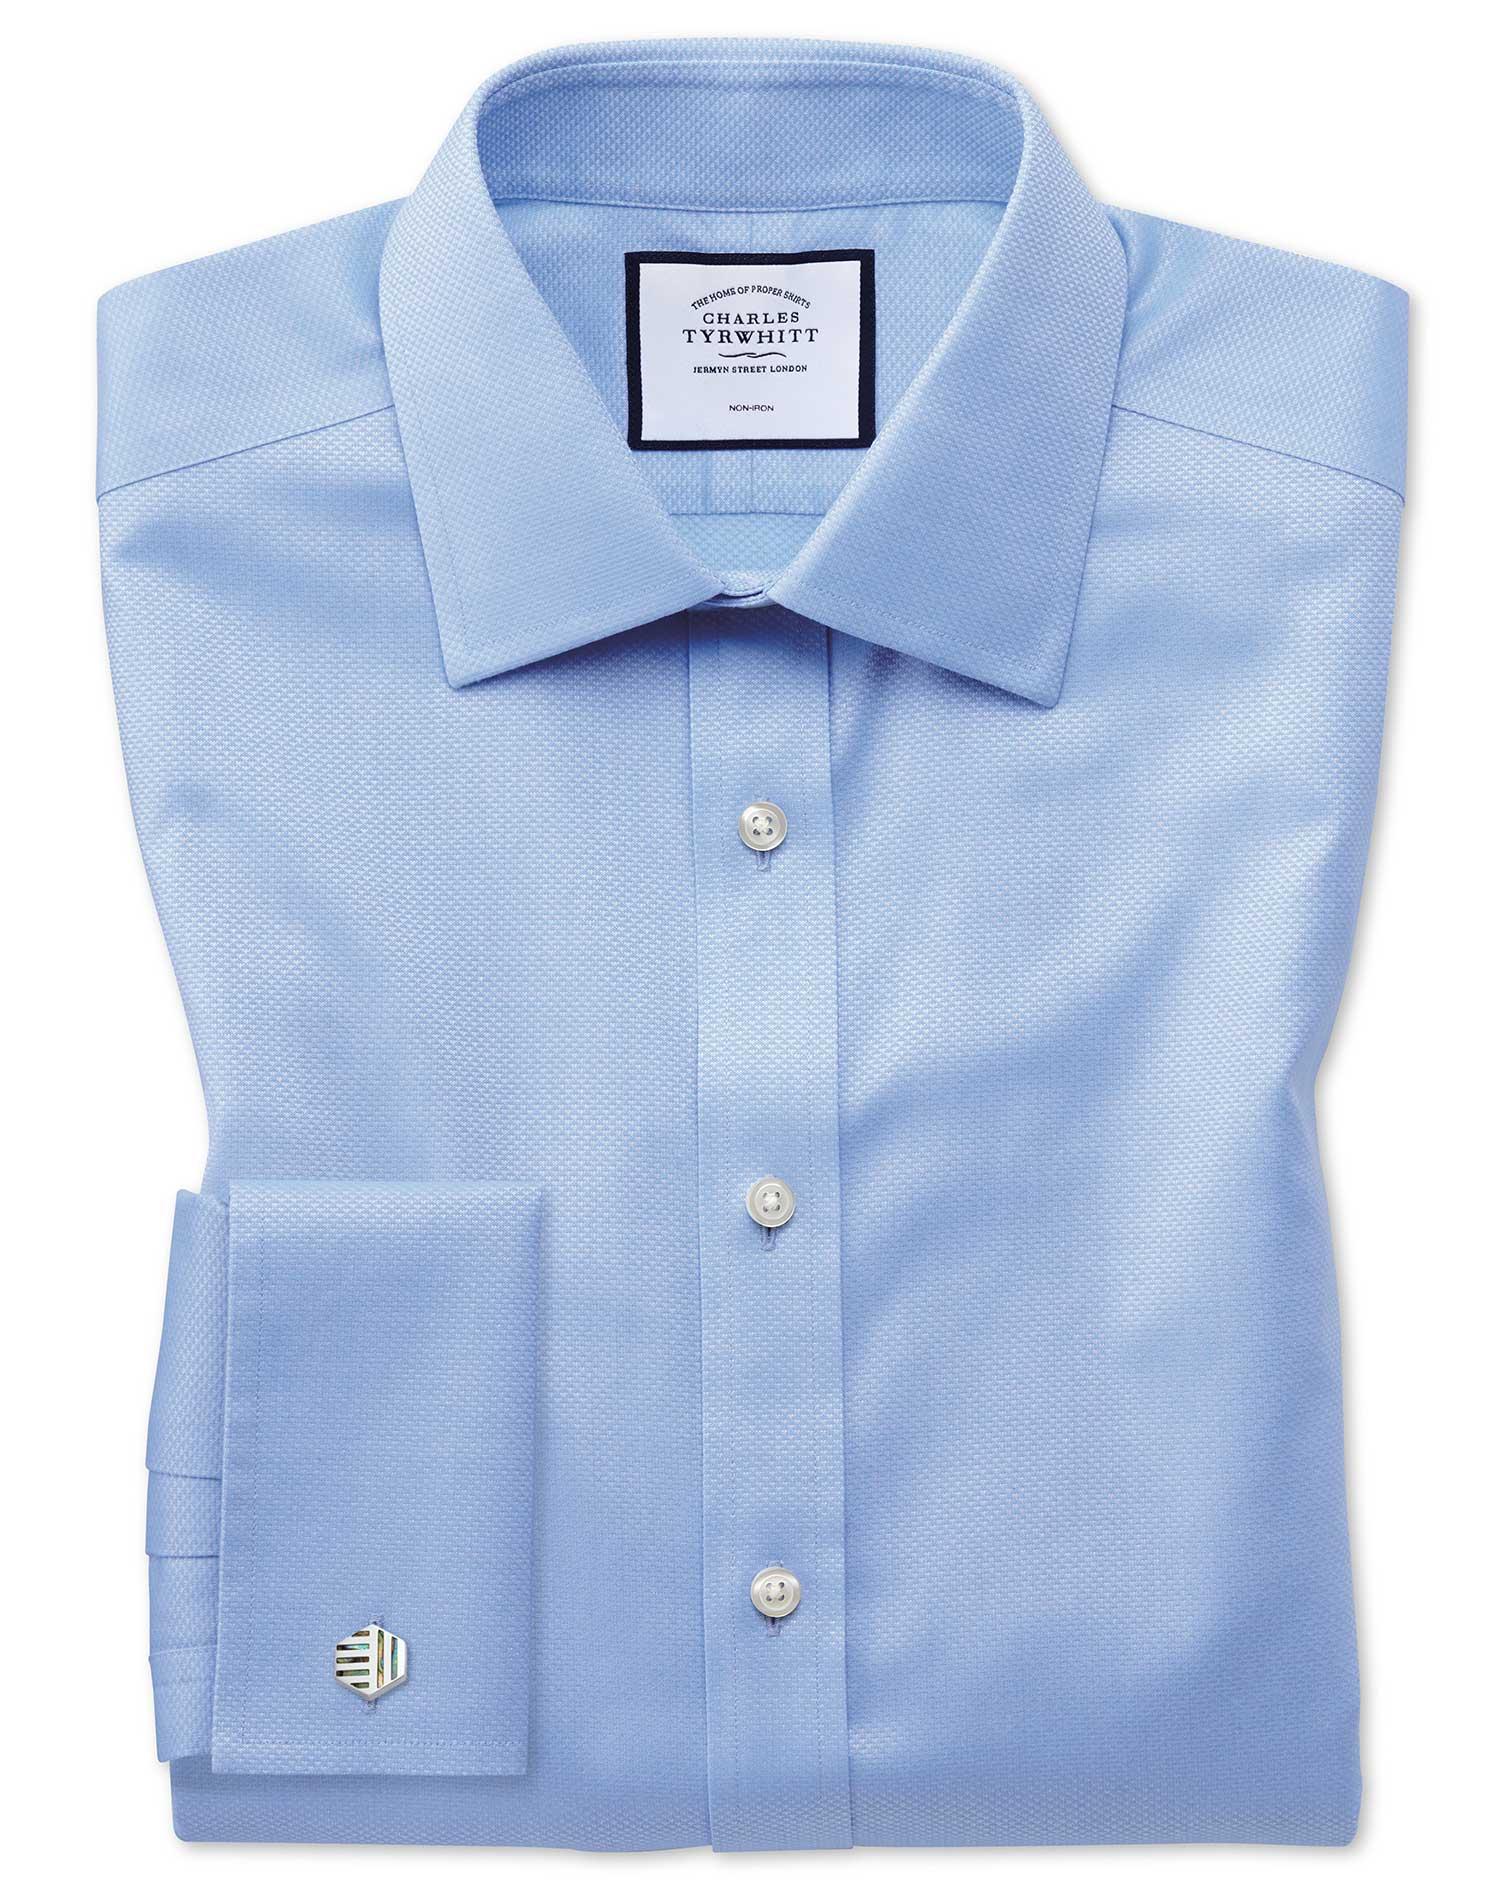 Extra Slim Fit Non-Iron Sky Blue Triangle Weave Cotton Formal Shirt Single Cuff Size 15/35 by Charle